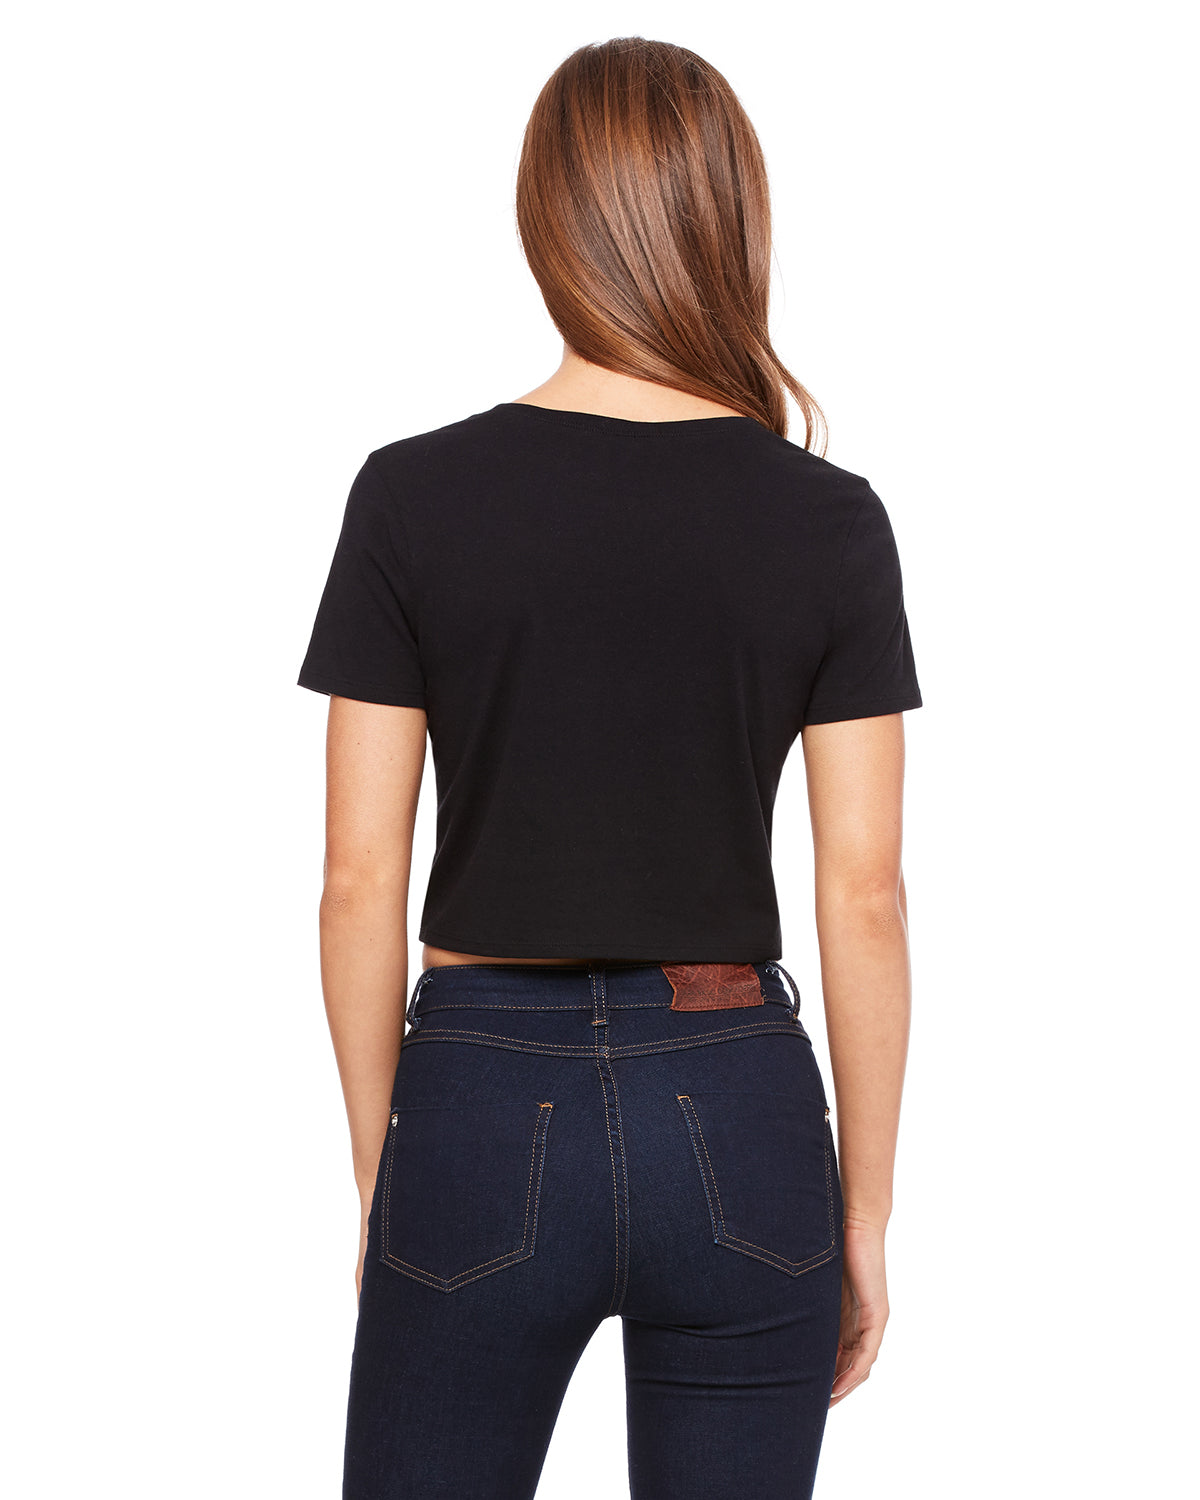 Nap Queen Crop Tee Black